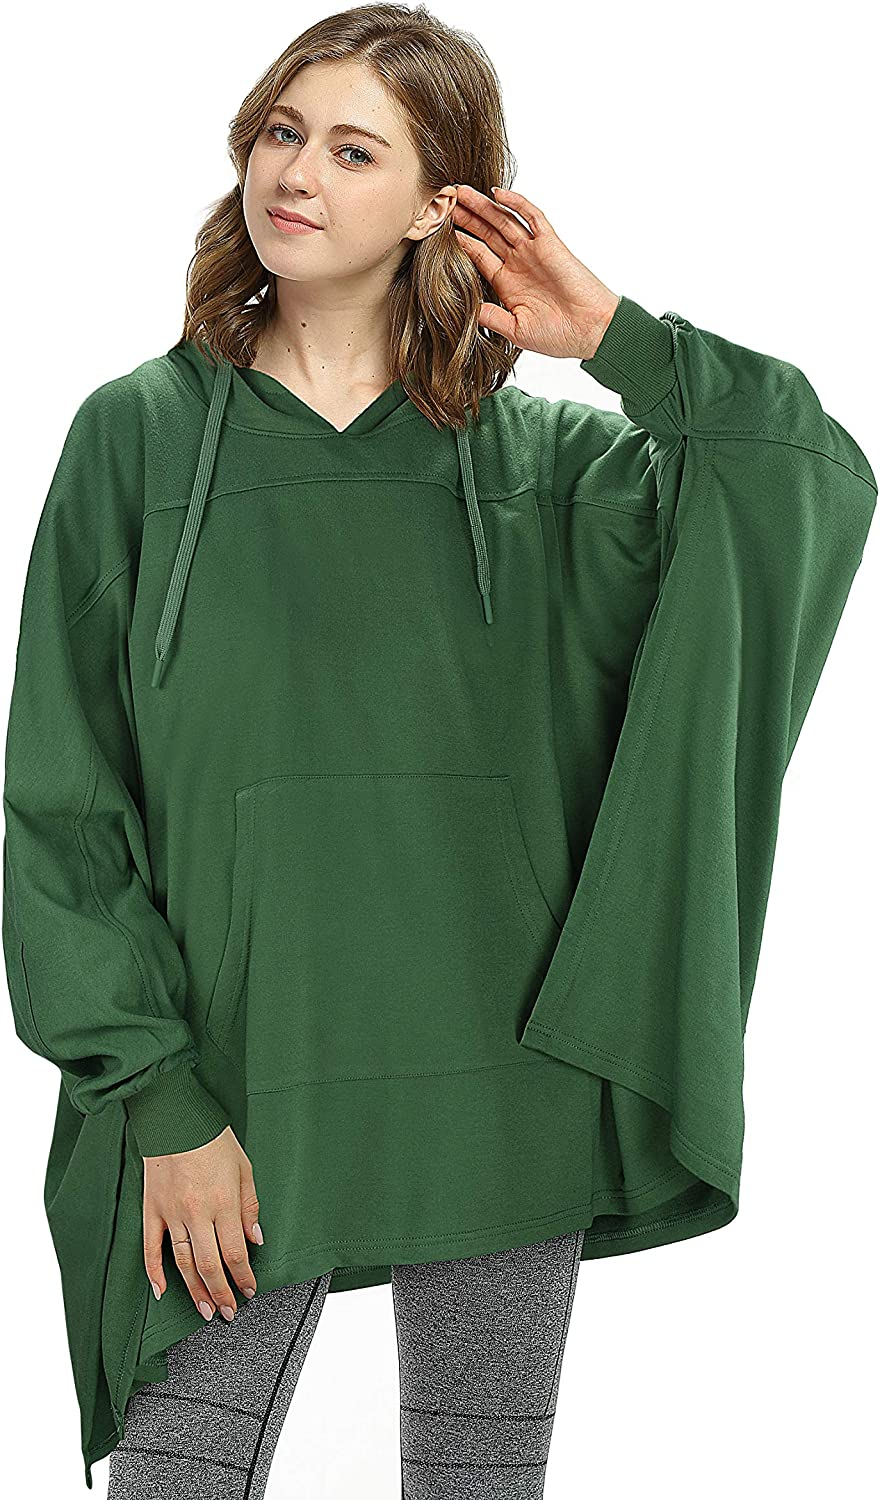 Oversized Hoodie Sweatshirt Poncho, Casual Hoodie Cape, Batwing Coat Pullover Blanket   Light Weight, Comfortable, Roomy   for Adults Women Men